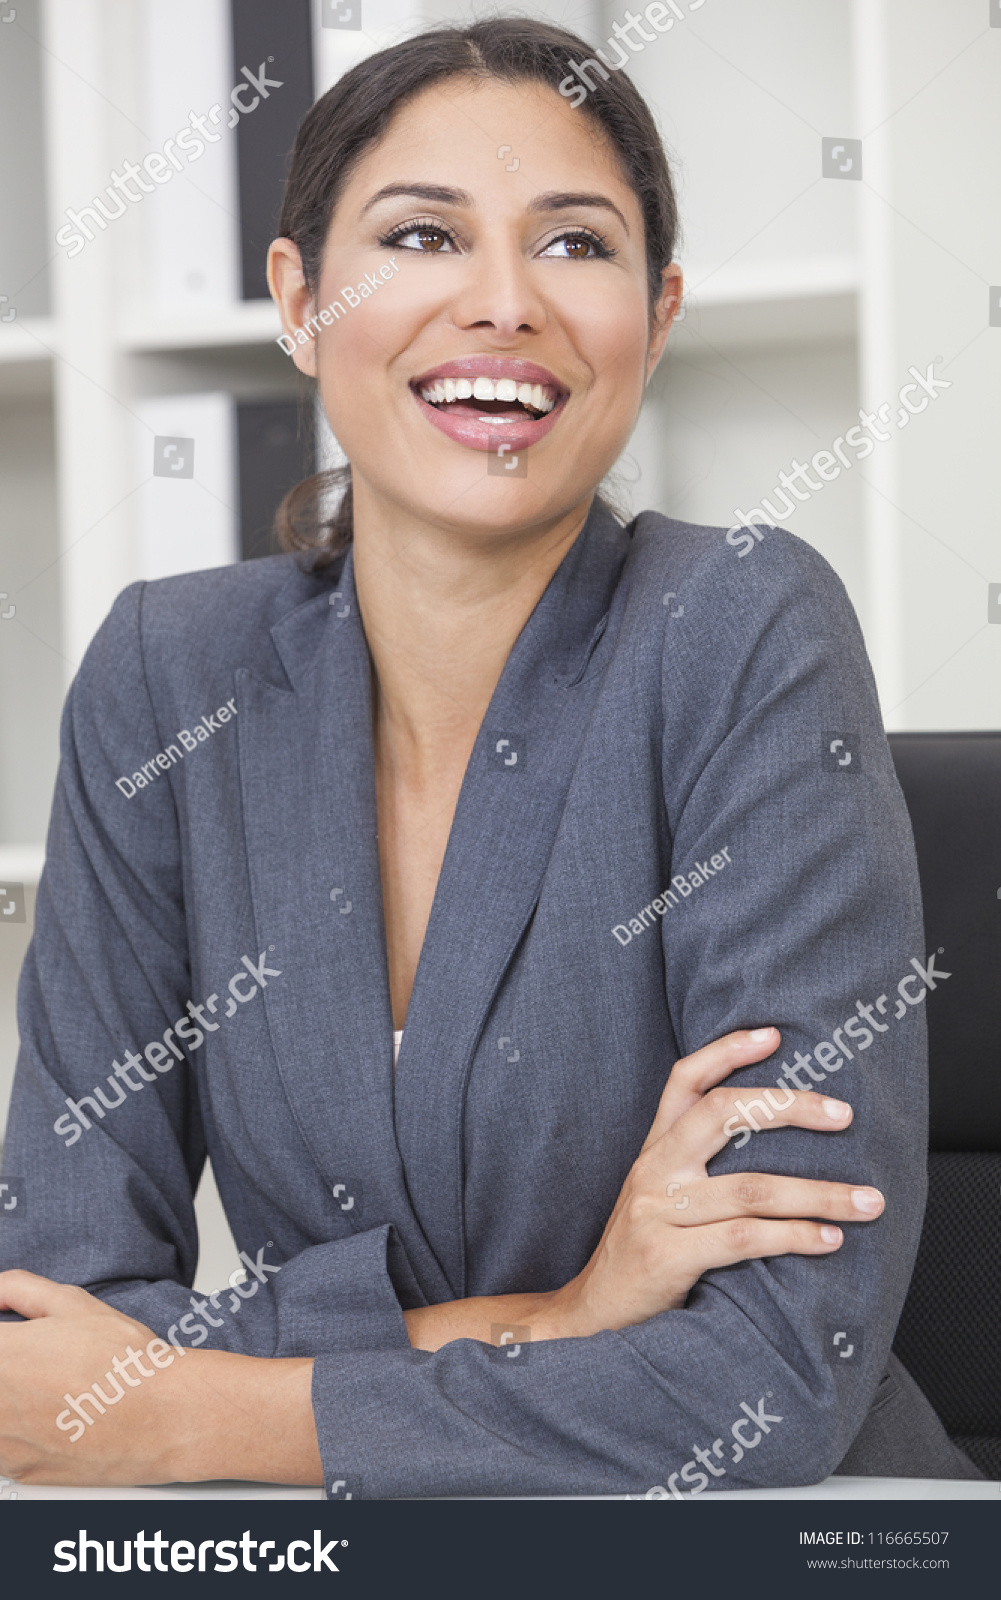 Small latina office suit